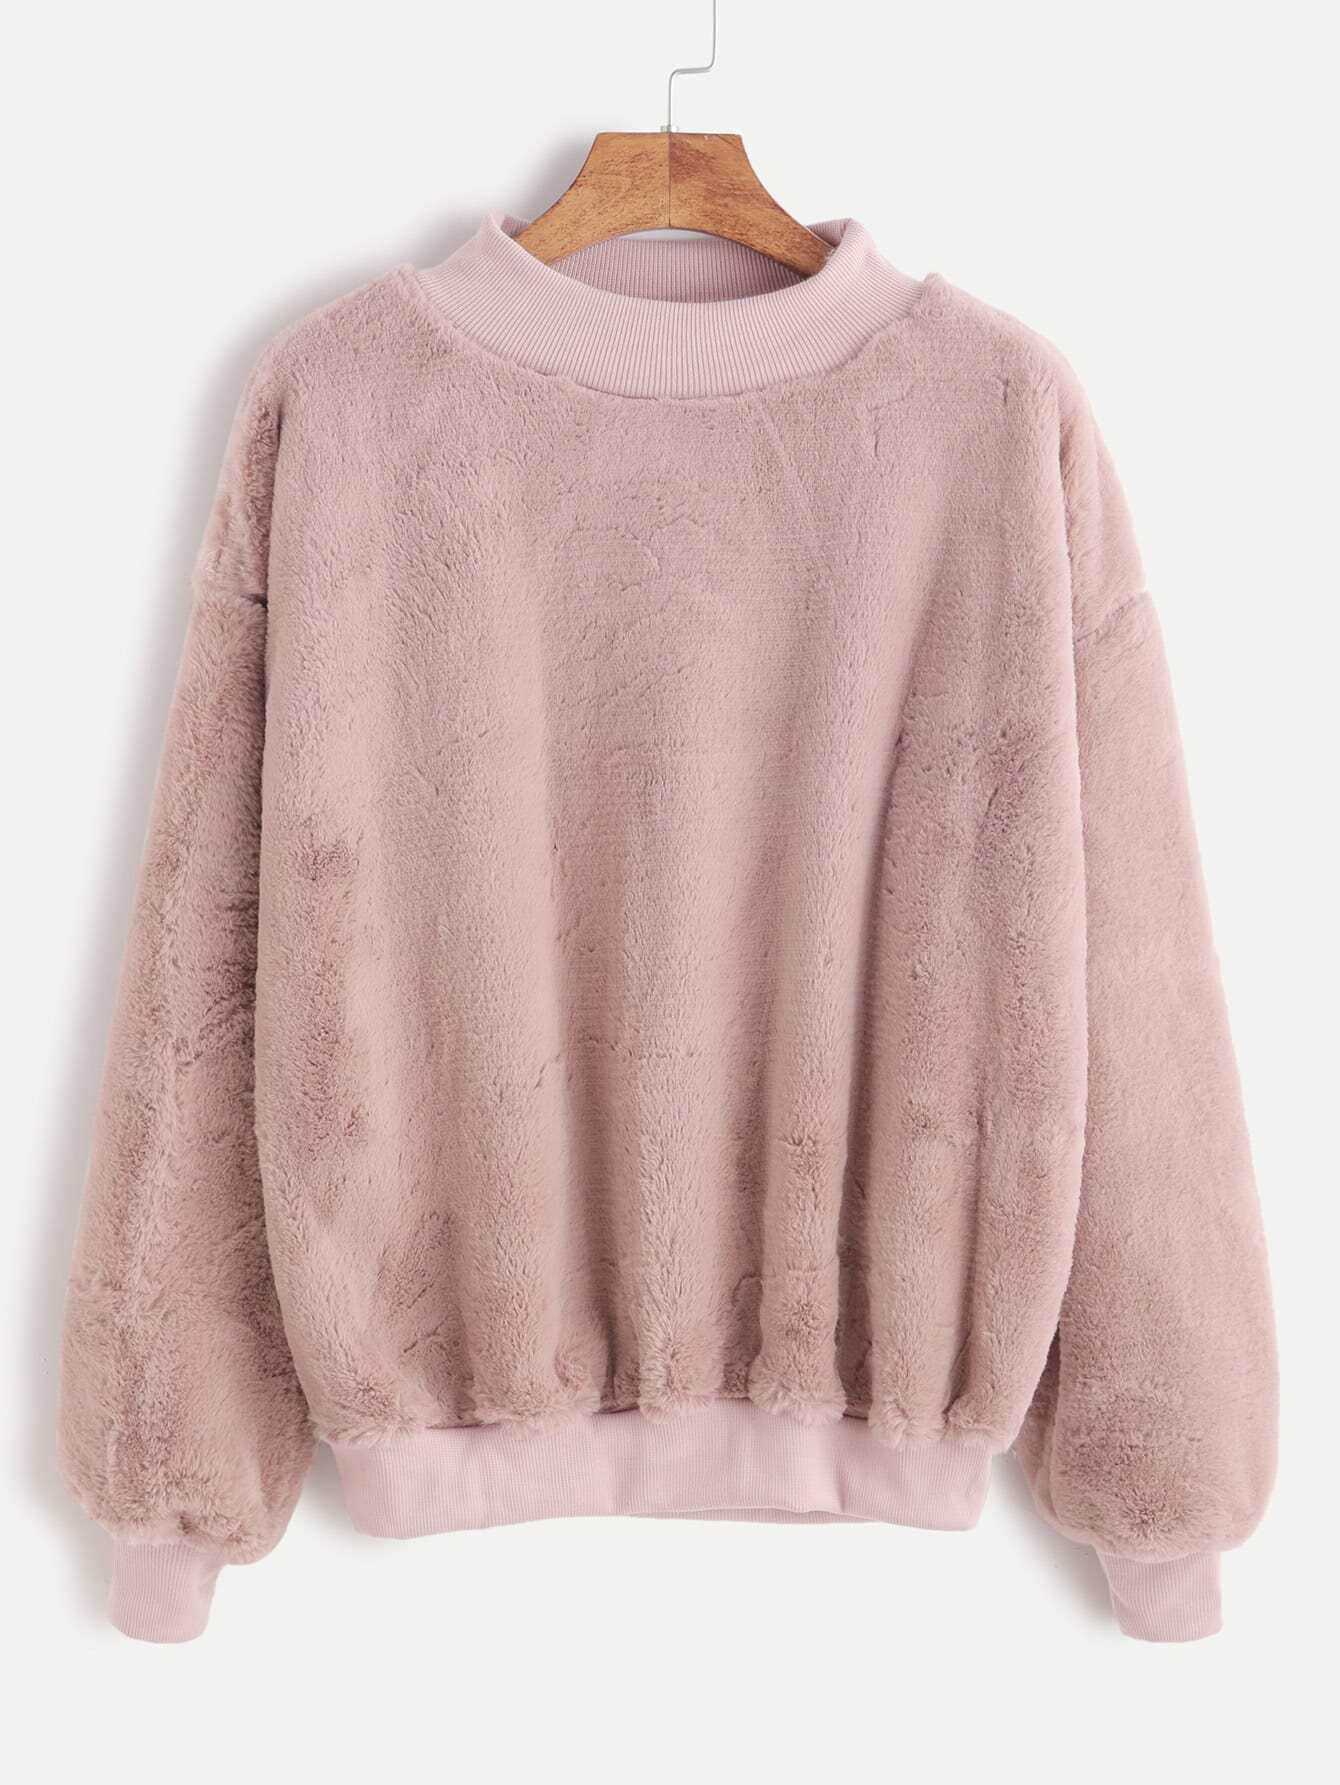 Contrast Ribbed Trim Drop Shoulder Fluffy Sweatshirt sweatshirt161104102